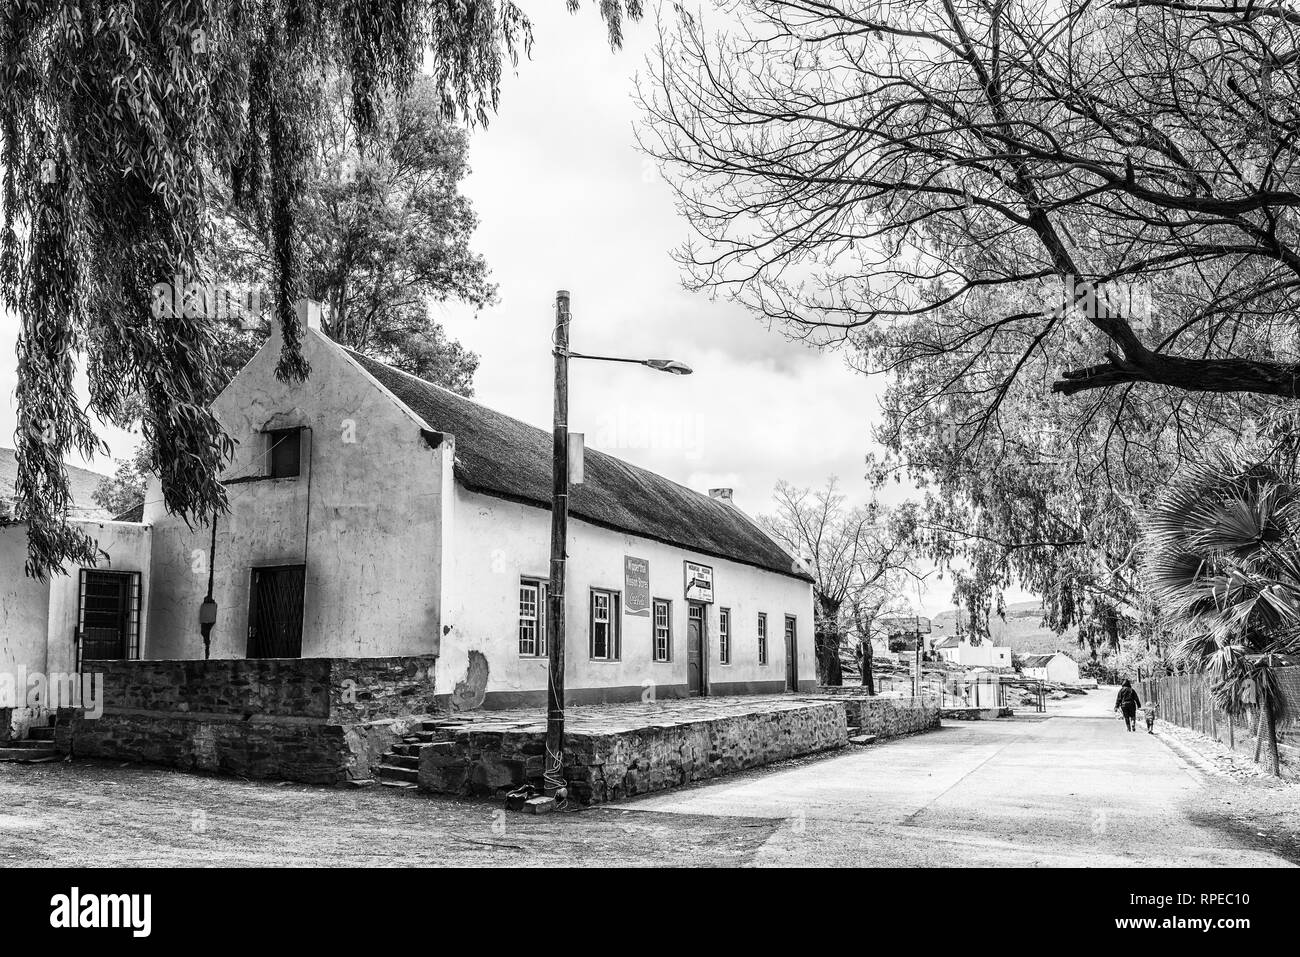 WUPPERTHAL, SOUTH AFRICA, AUGUST 27, 2018: The Moravian Mission Store in Wupperthal in the Cederberg Mountains of the Western Cape Province. People ar - Stock Image